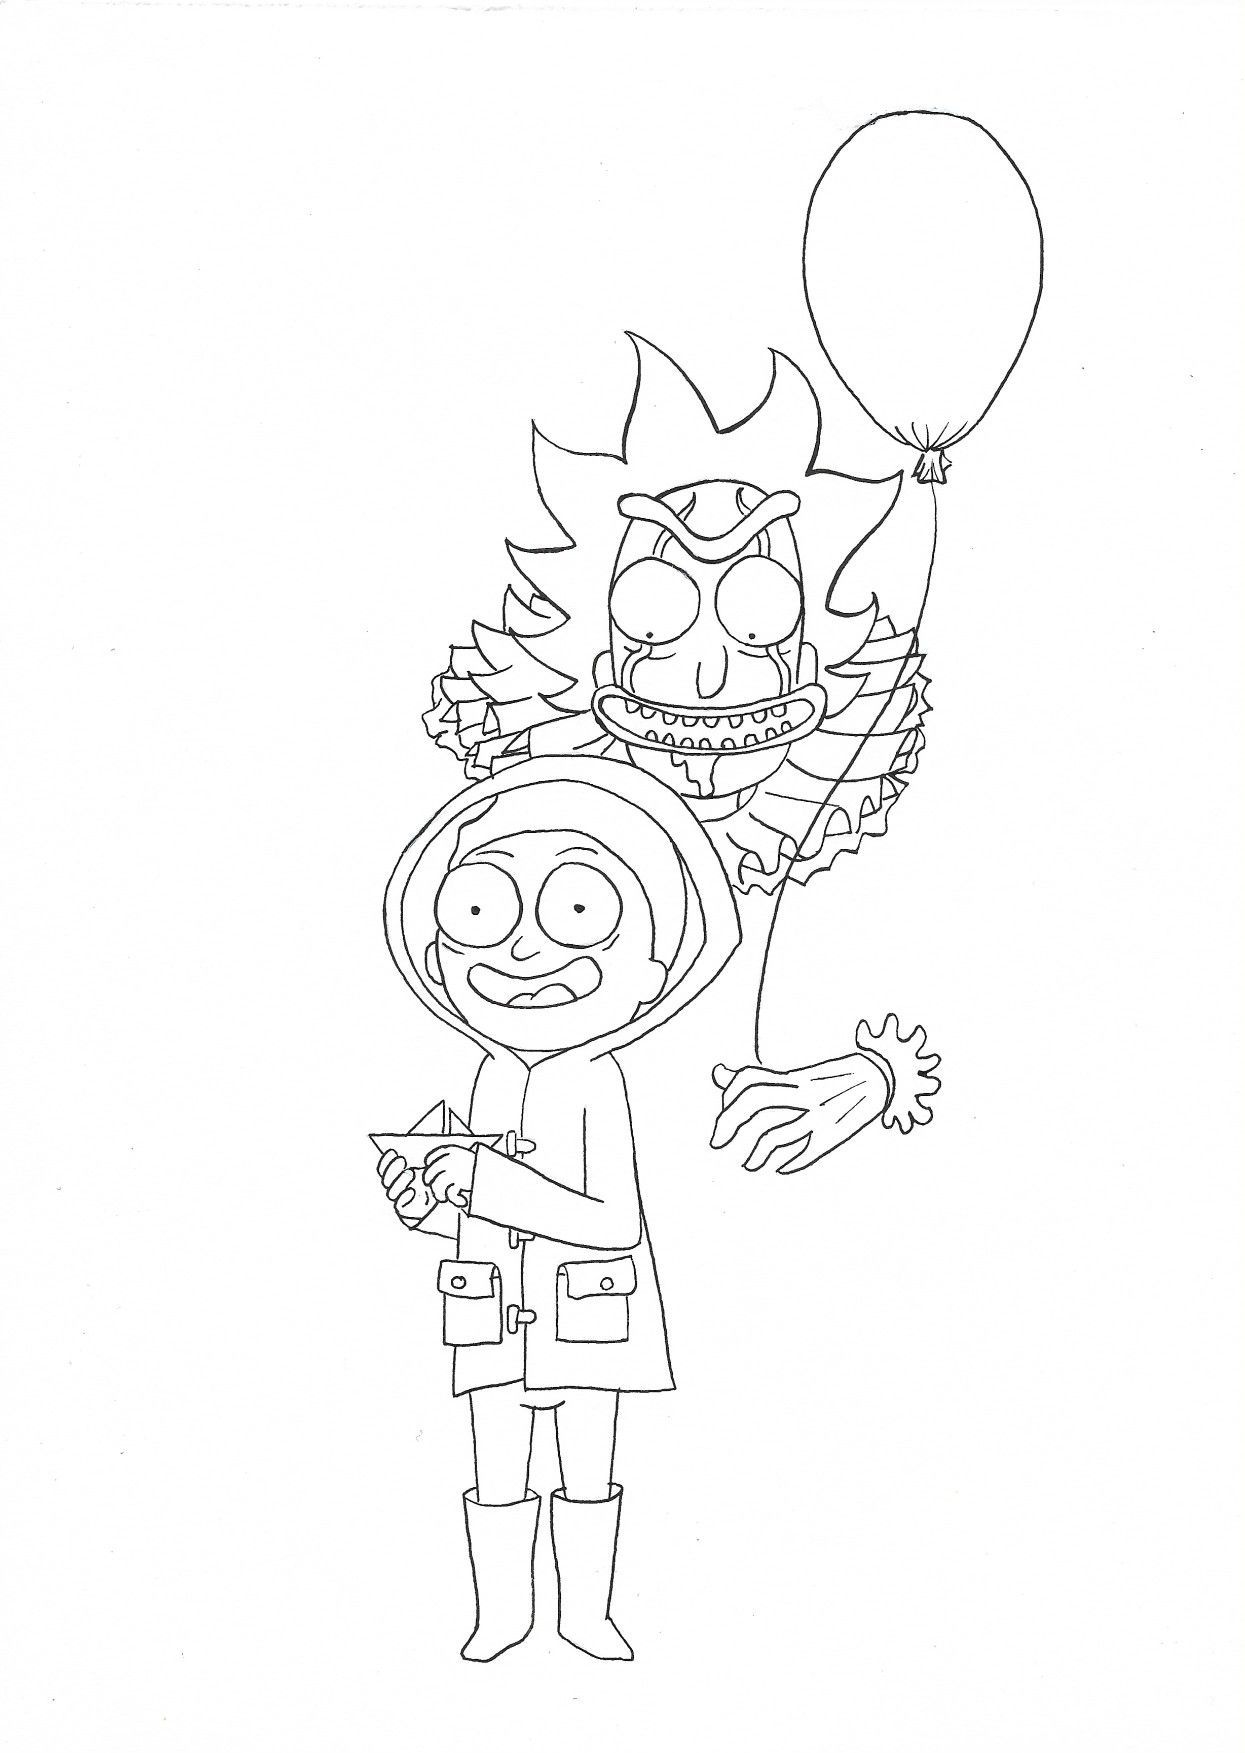 Rick And Morty Coloring Pages Rick And Morty Drawing Rick And Morty Tattoo Rick And Morty Poster